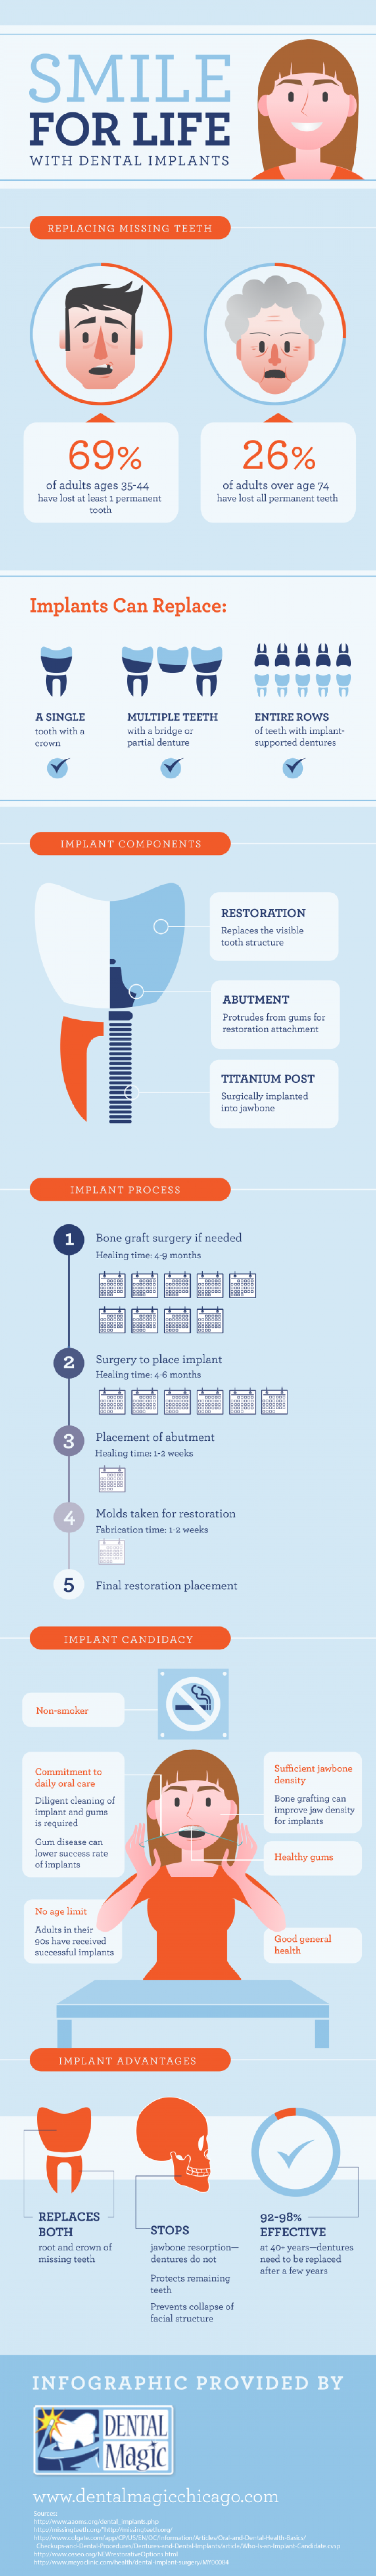 Smile for Life with Dental Implants Infographic